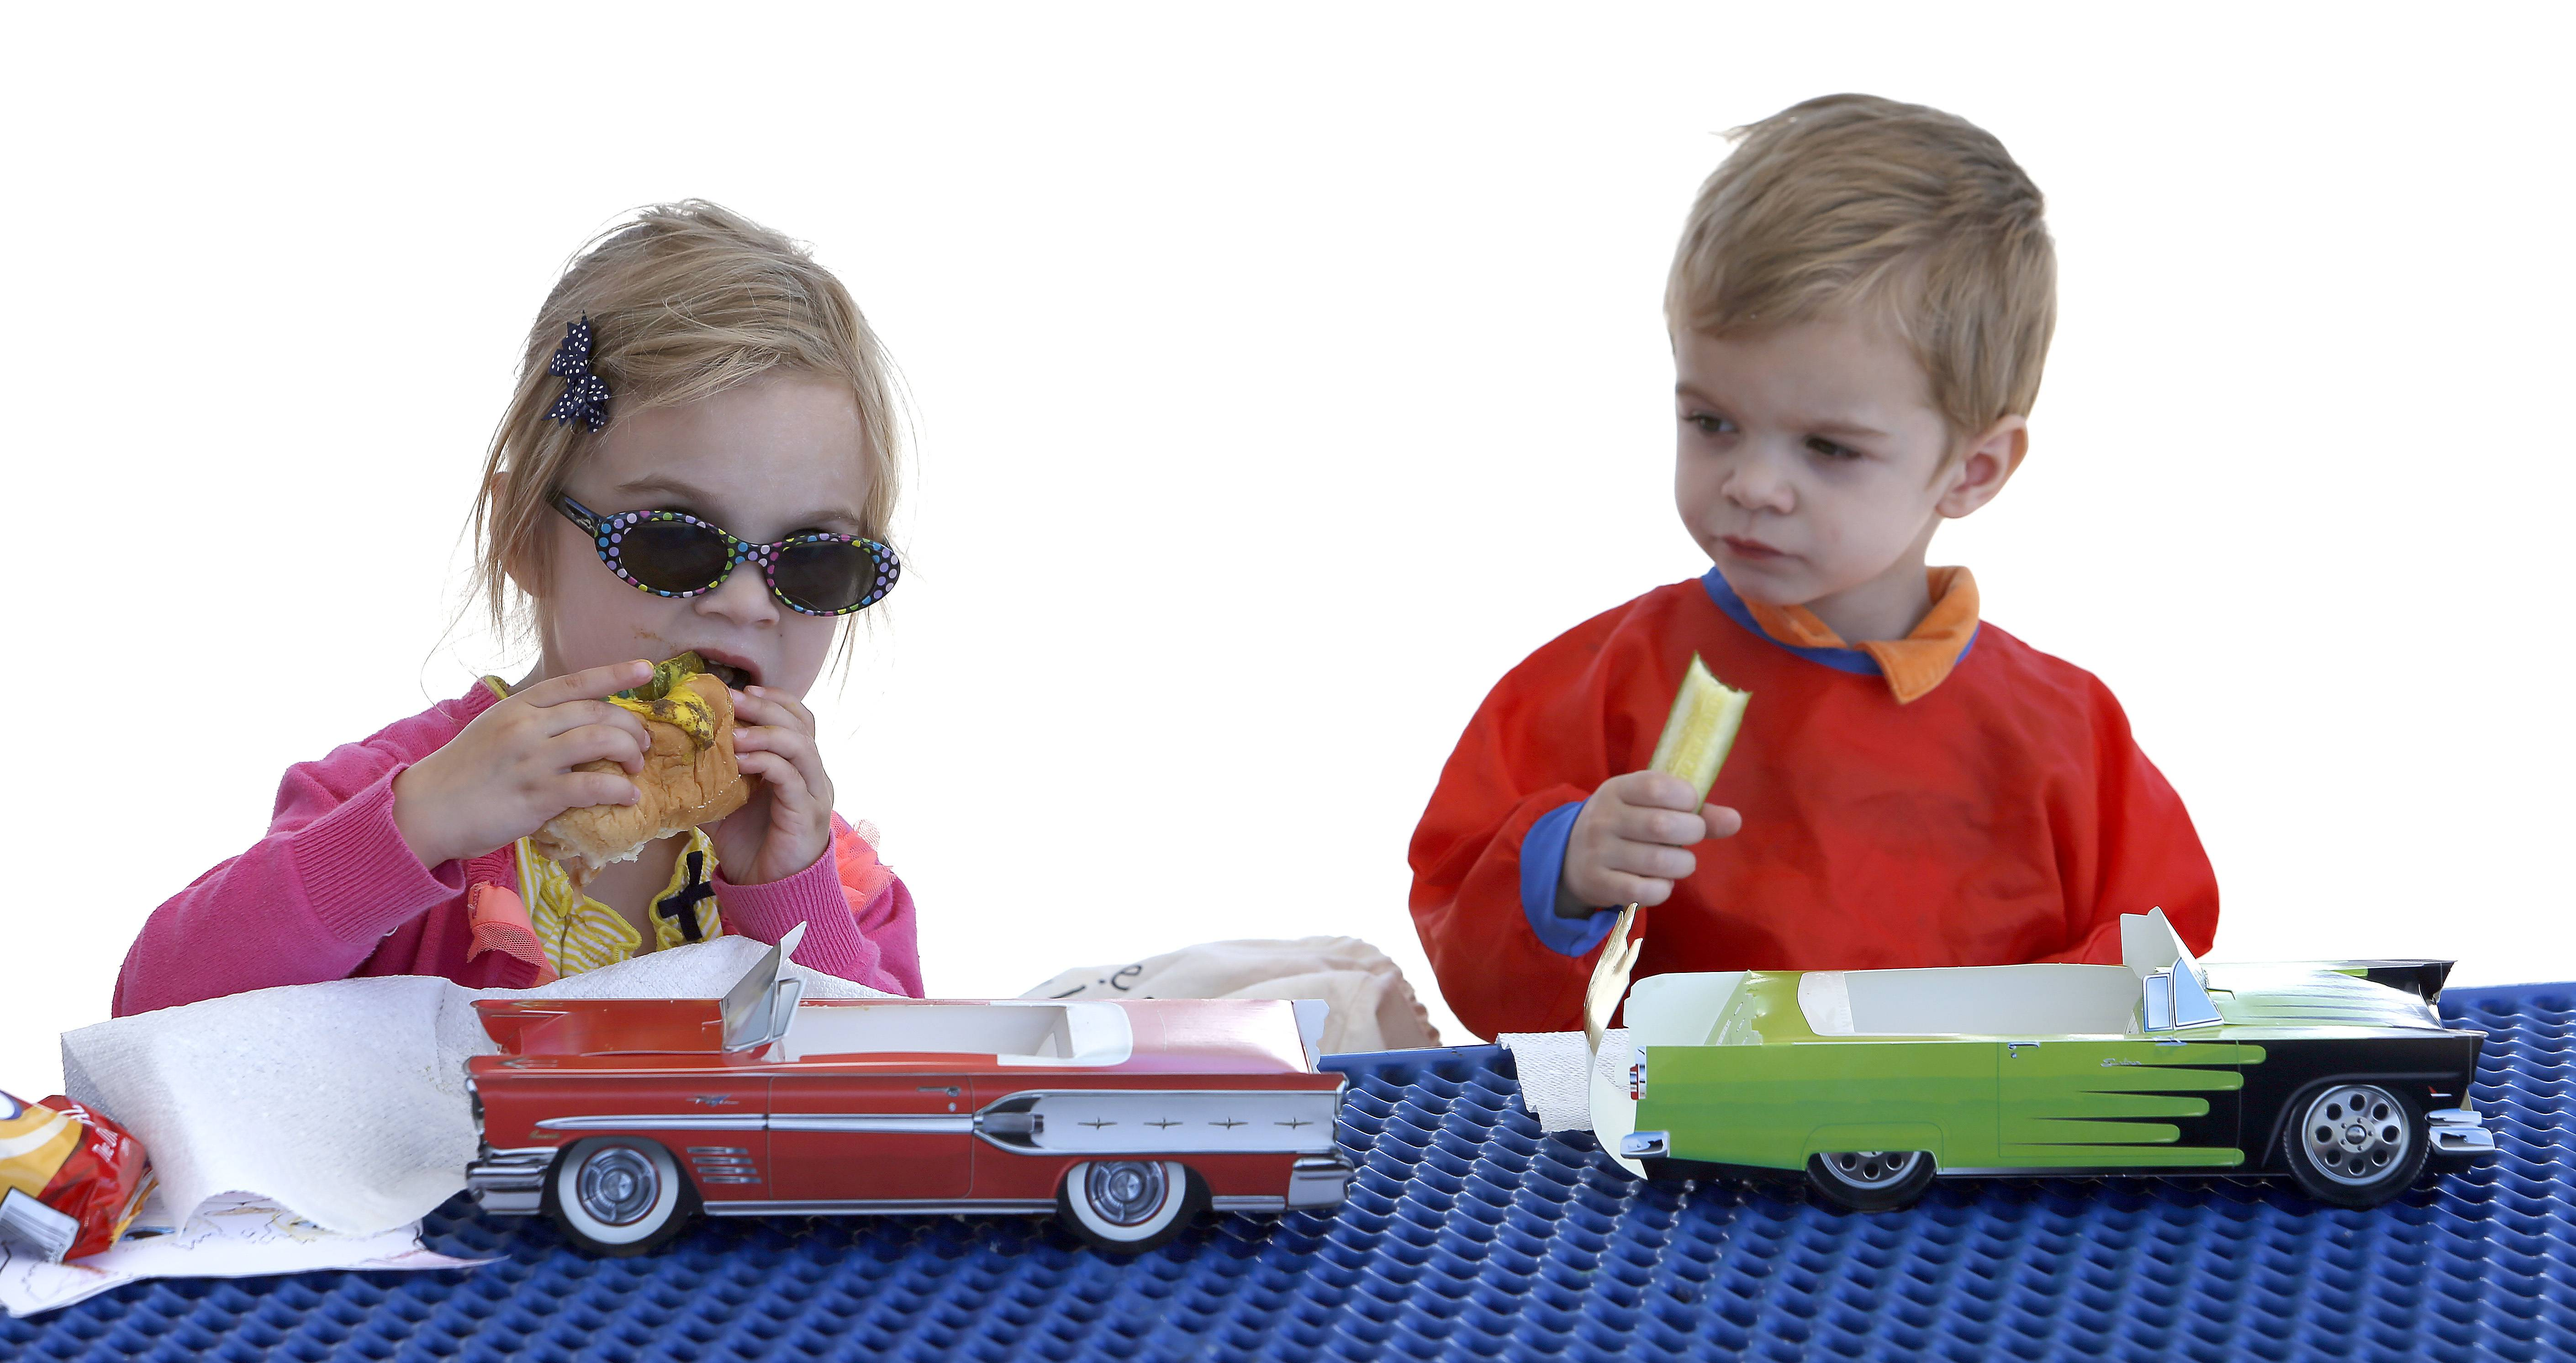 Nora Newby, 4, and her younger brother Nelson, 2, both of Elgin, enjoy a hot dog with all the fixings during the first day of the Elgin Harvest Market. The hot dogs came in a cardboard box shaped like a classic car. The Downtown Neighborhood Association of Elgin's Harvest Market will run 9 a.m. to 2 p.m. every Thursday through Oct. 2, at 200 N. Grove, across from the Gail Borden Public Library in downtown Elgin. For more information about the 2014 Downtown Elgin Harvest Market season, contact market manager Jennifer Benson at (847) 488-1456 or visit elginharvestmarket.com.